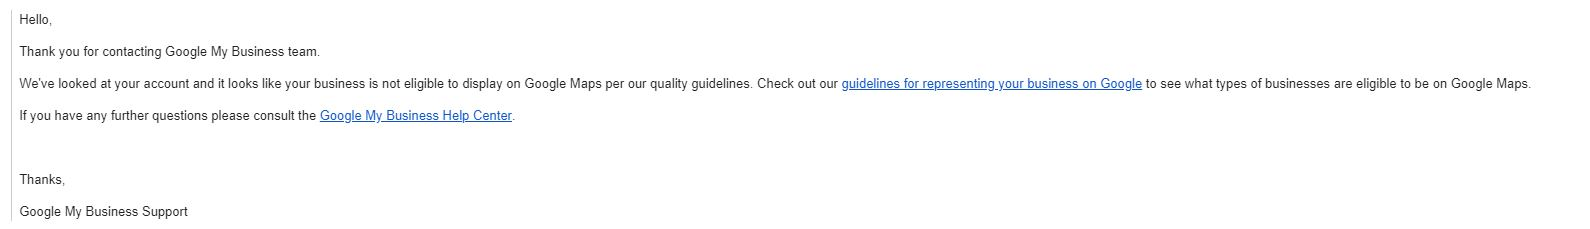 google my business support email.JPG